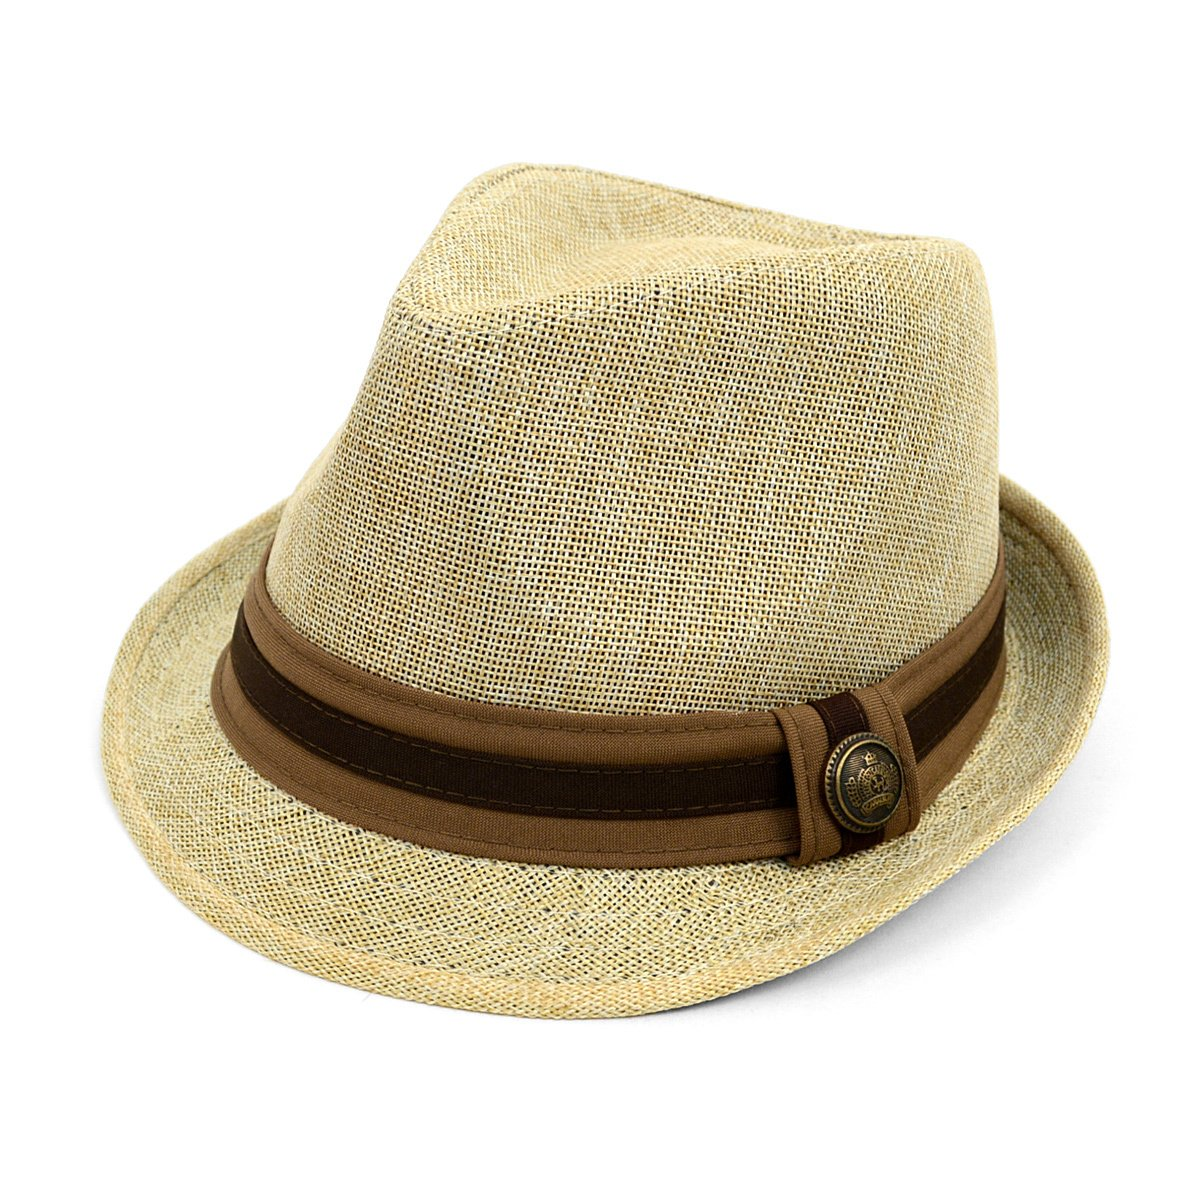 West End Linen Weave Fashion Fedora with Two-Tone Band & Button